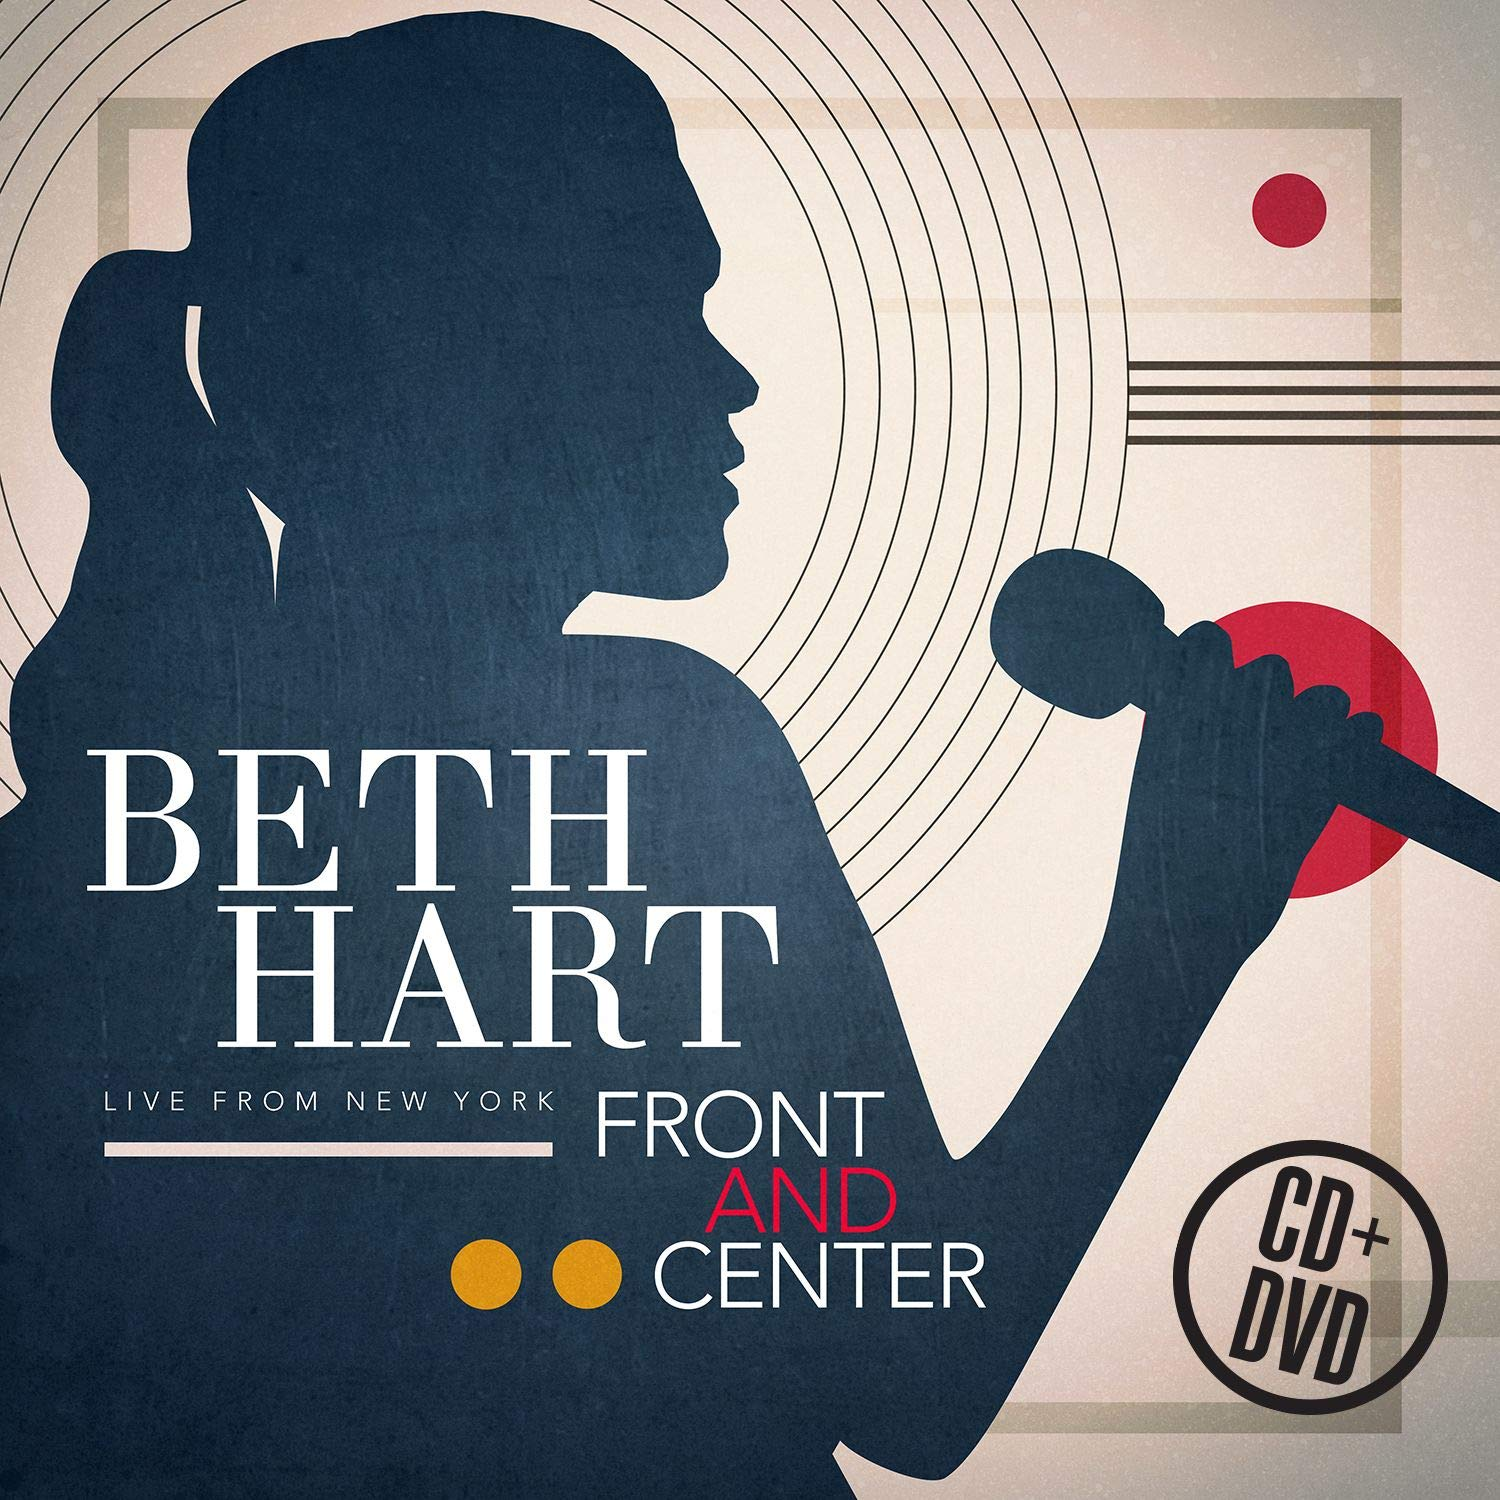 Front And Center Live From New York CD DVD Beth Hart Amazon